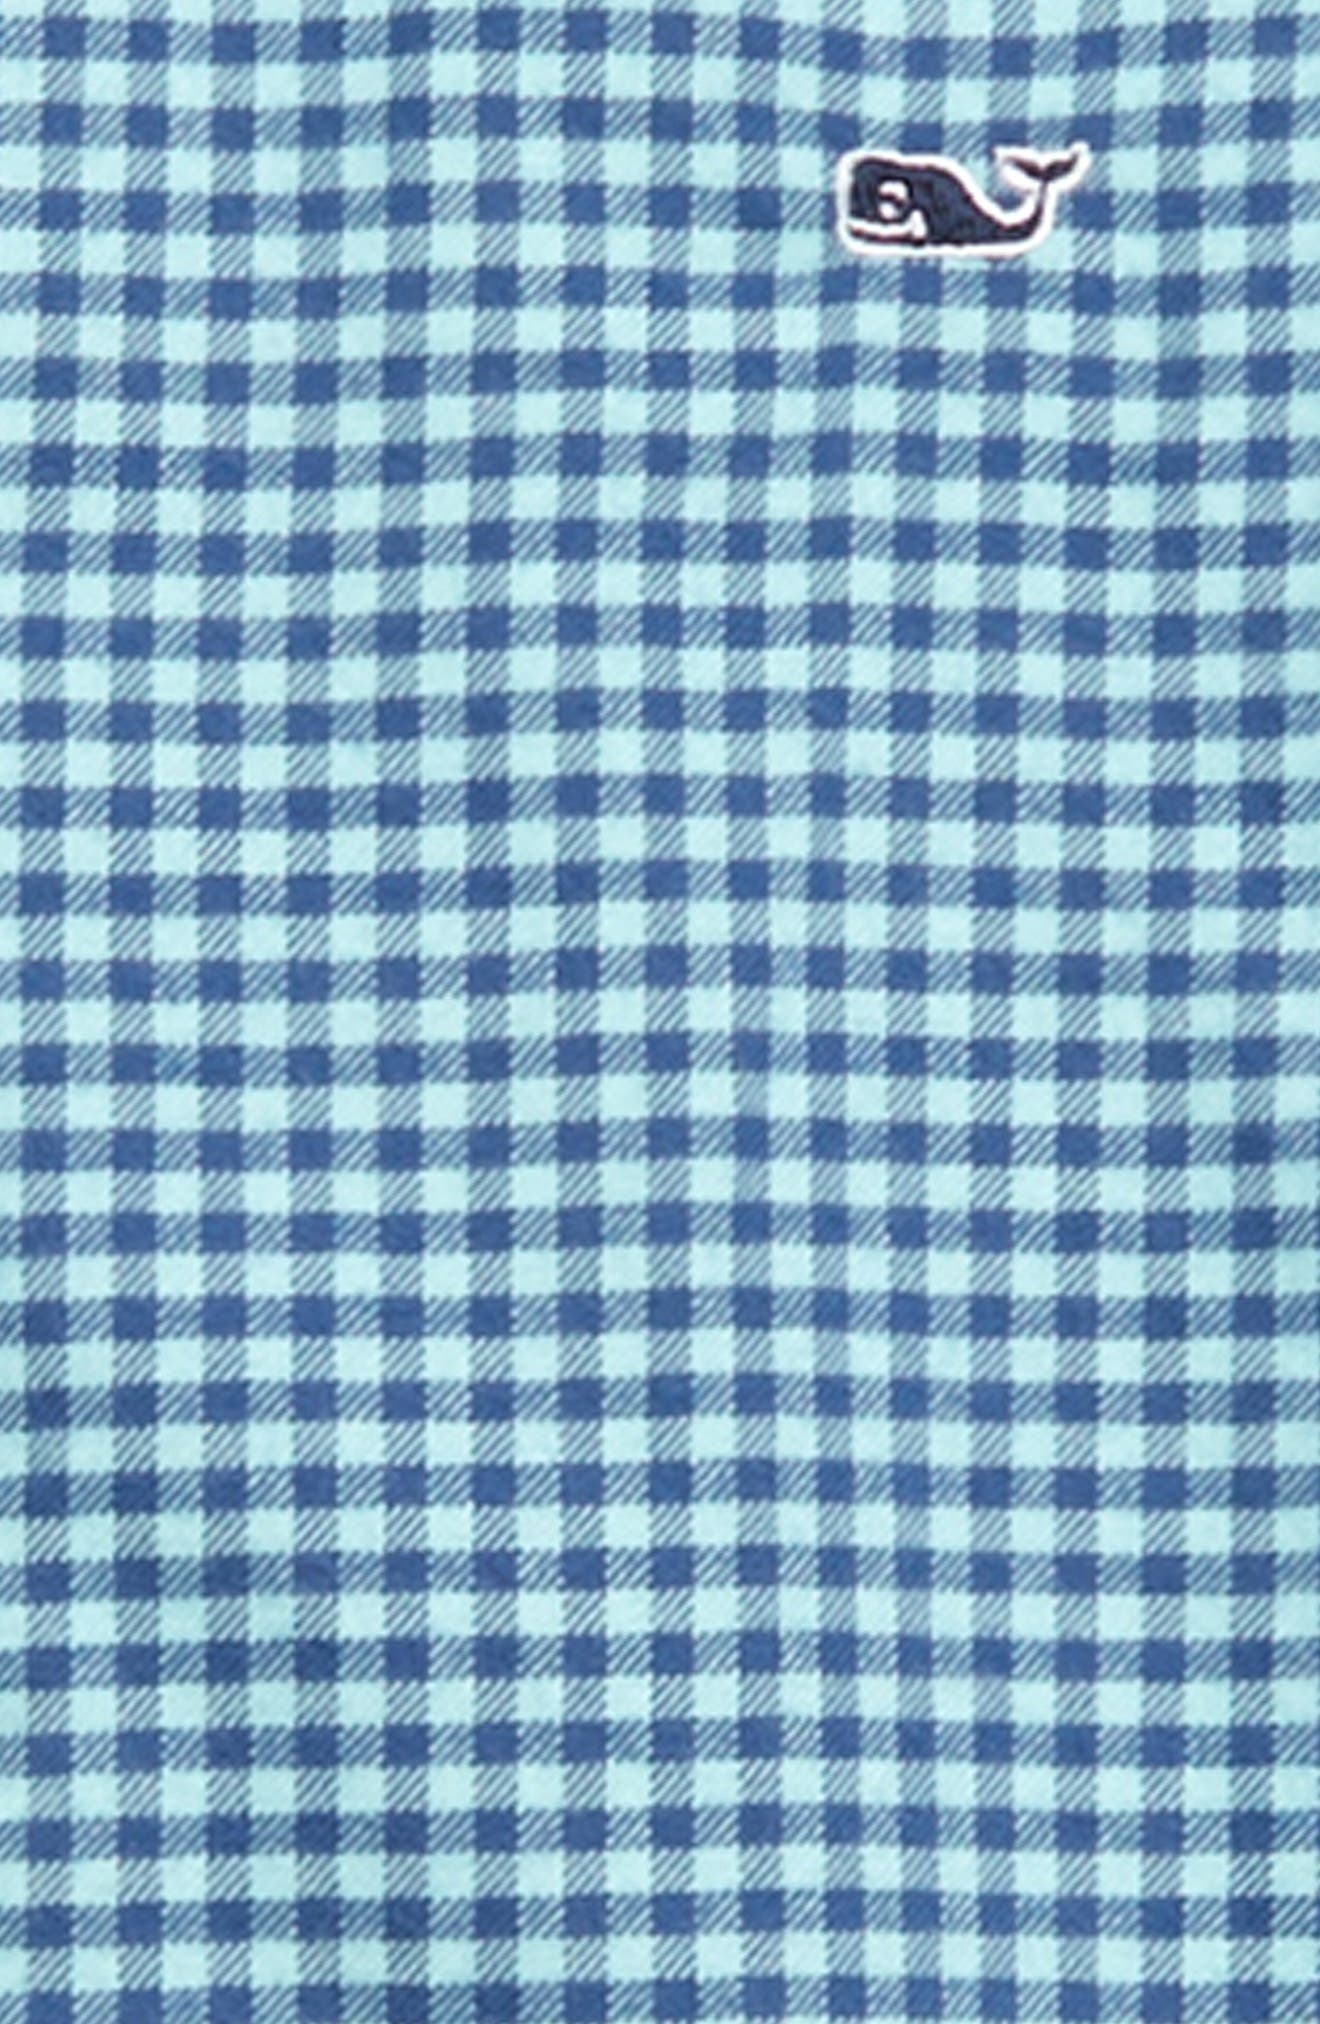 Tradewinds Flannel Whale Shirt,                             Alternate thumbnail 2, color,                             POOL SIDE